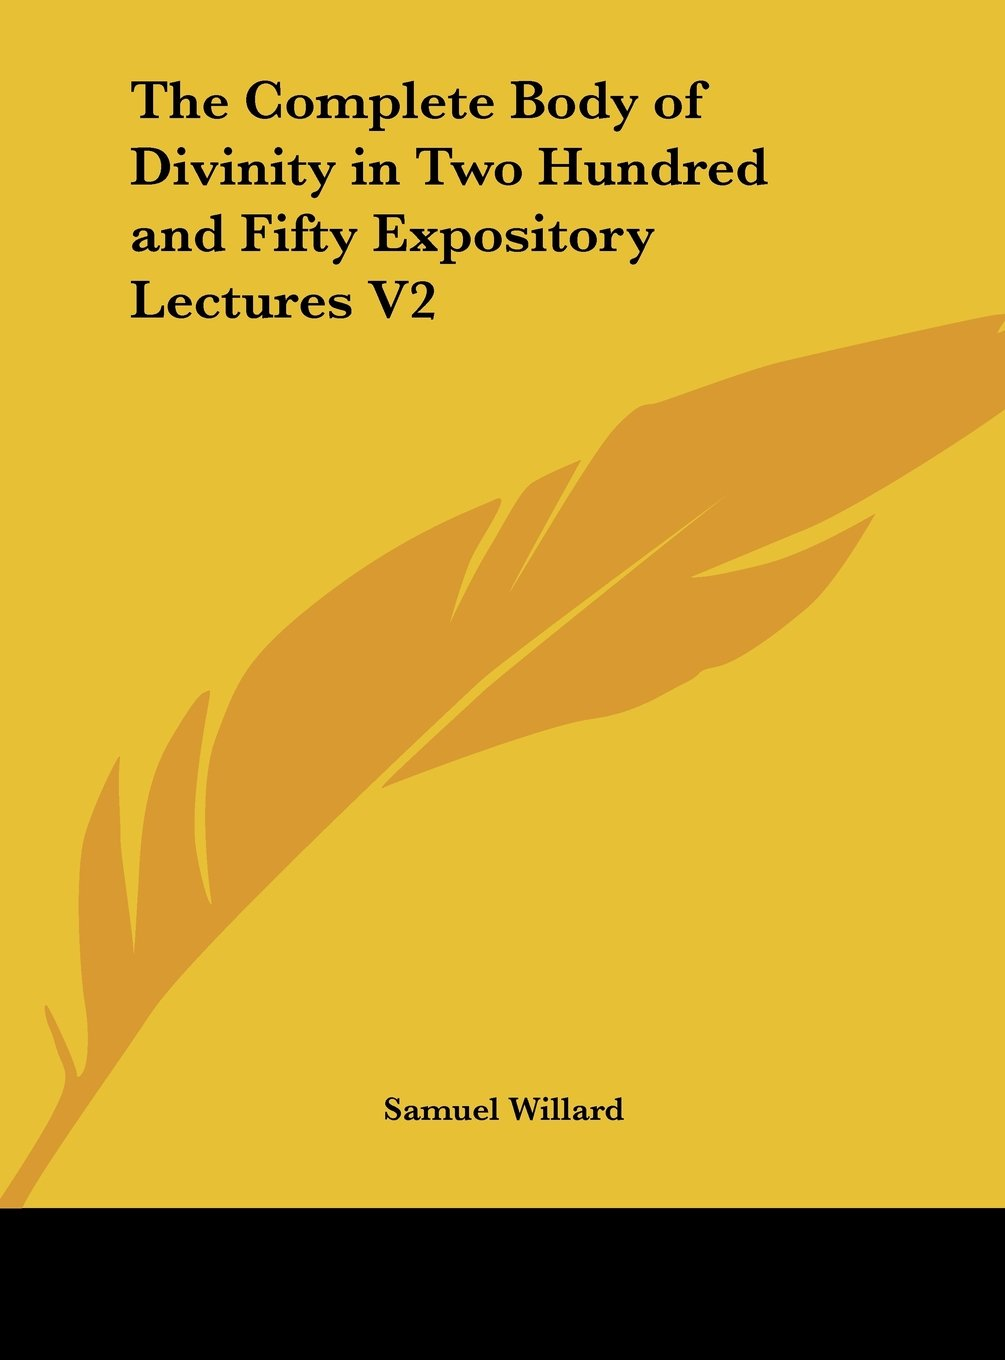 The Complete Body of Divinity in Two Hundred and Fifty Expository Lectures V2 pdf